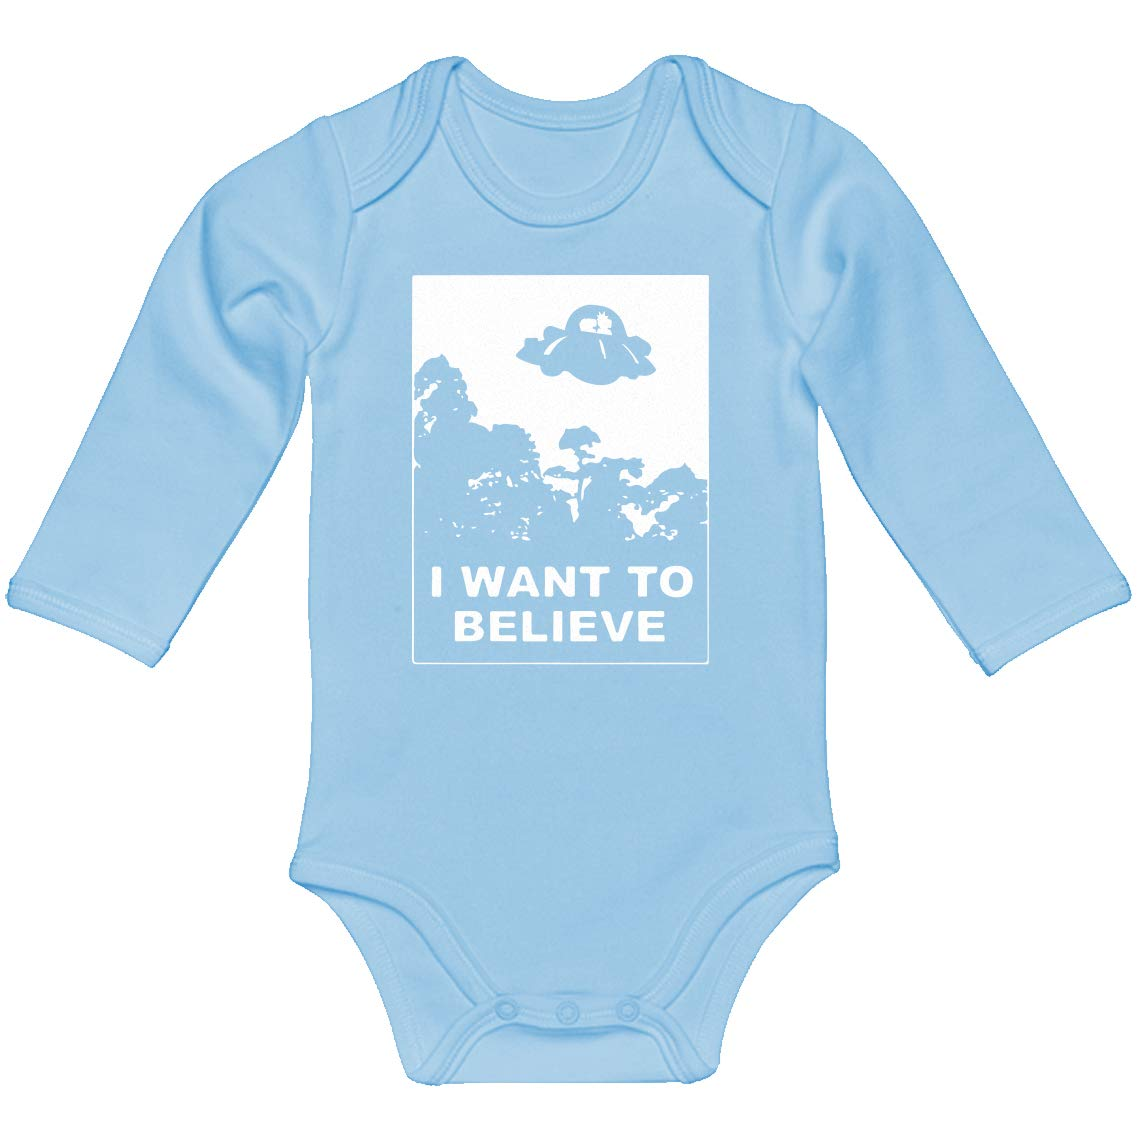 Baby Romper I Want to Believe Morty 100/% Cotton Long Sleeve Infant Bodysuit